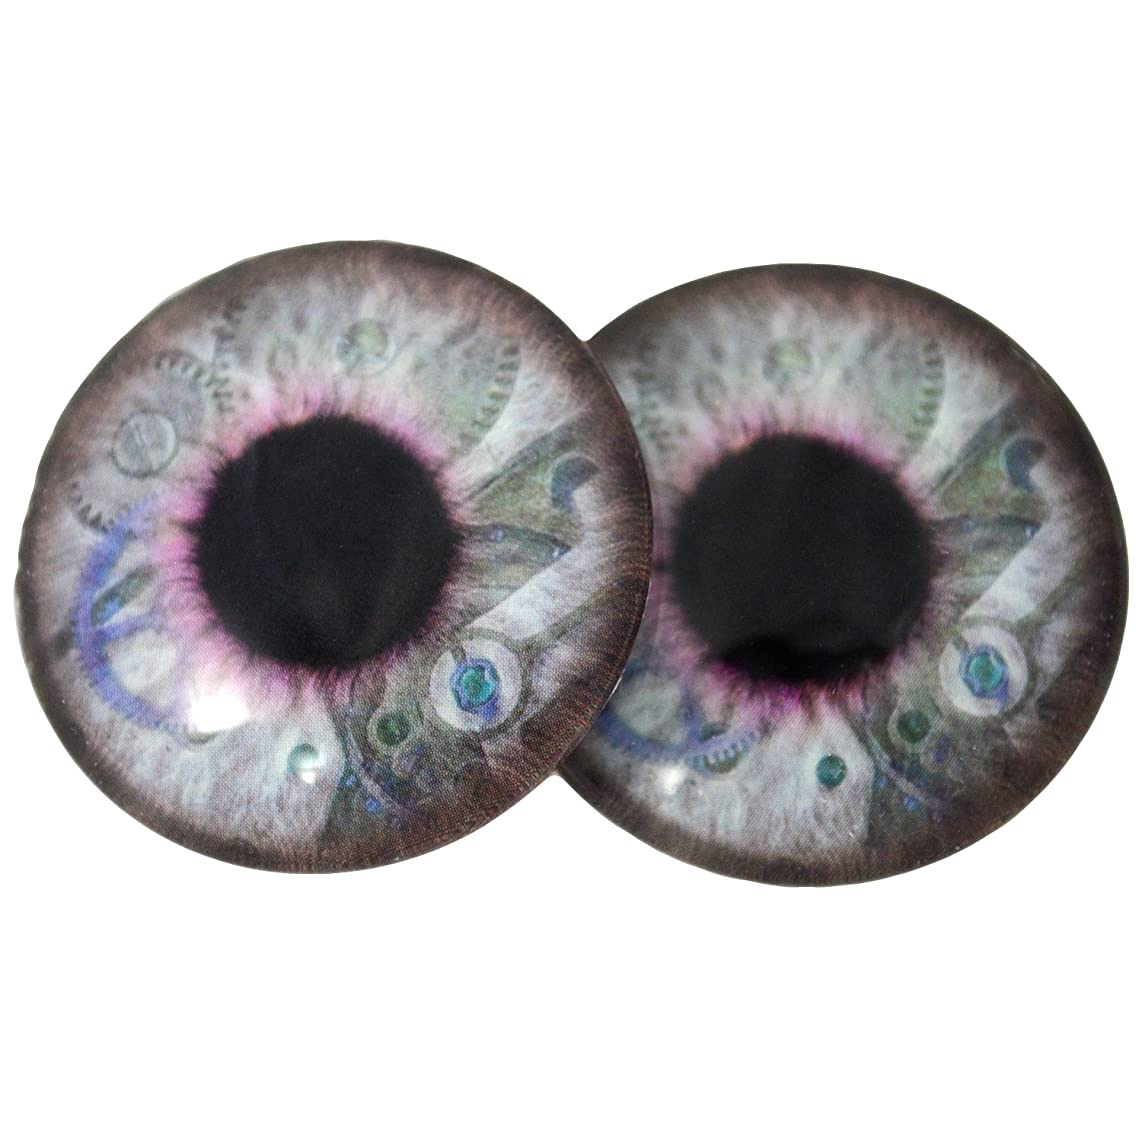 Big 40mm Steampunk Glass Eyes in Blue and Purple with Clockwork Details Iris Crafting Supply Flatback Cabochons for Art Doll Taxidermy or Jewelry Making